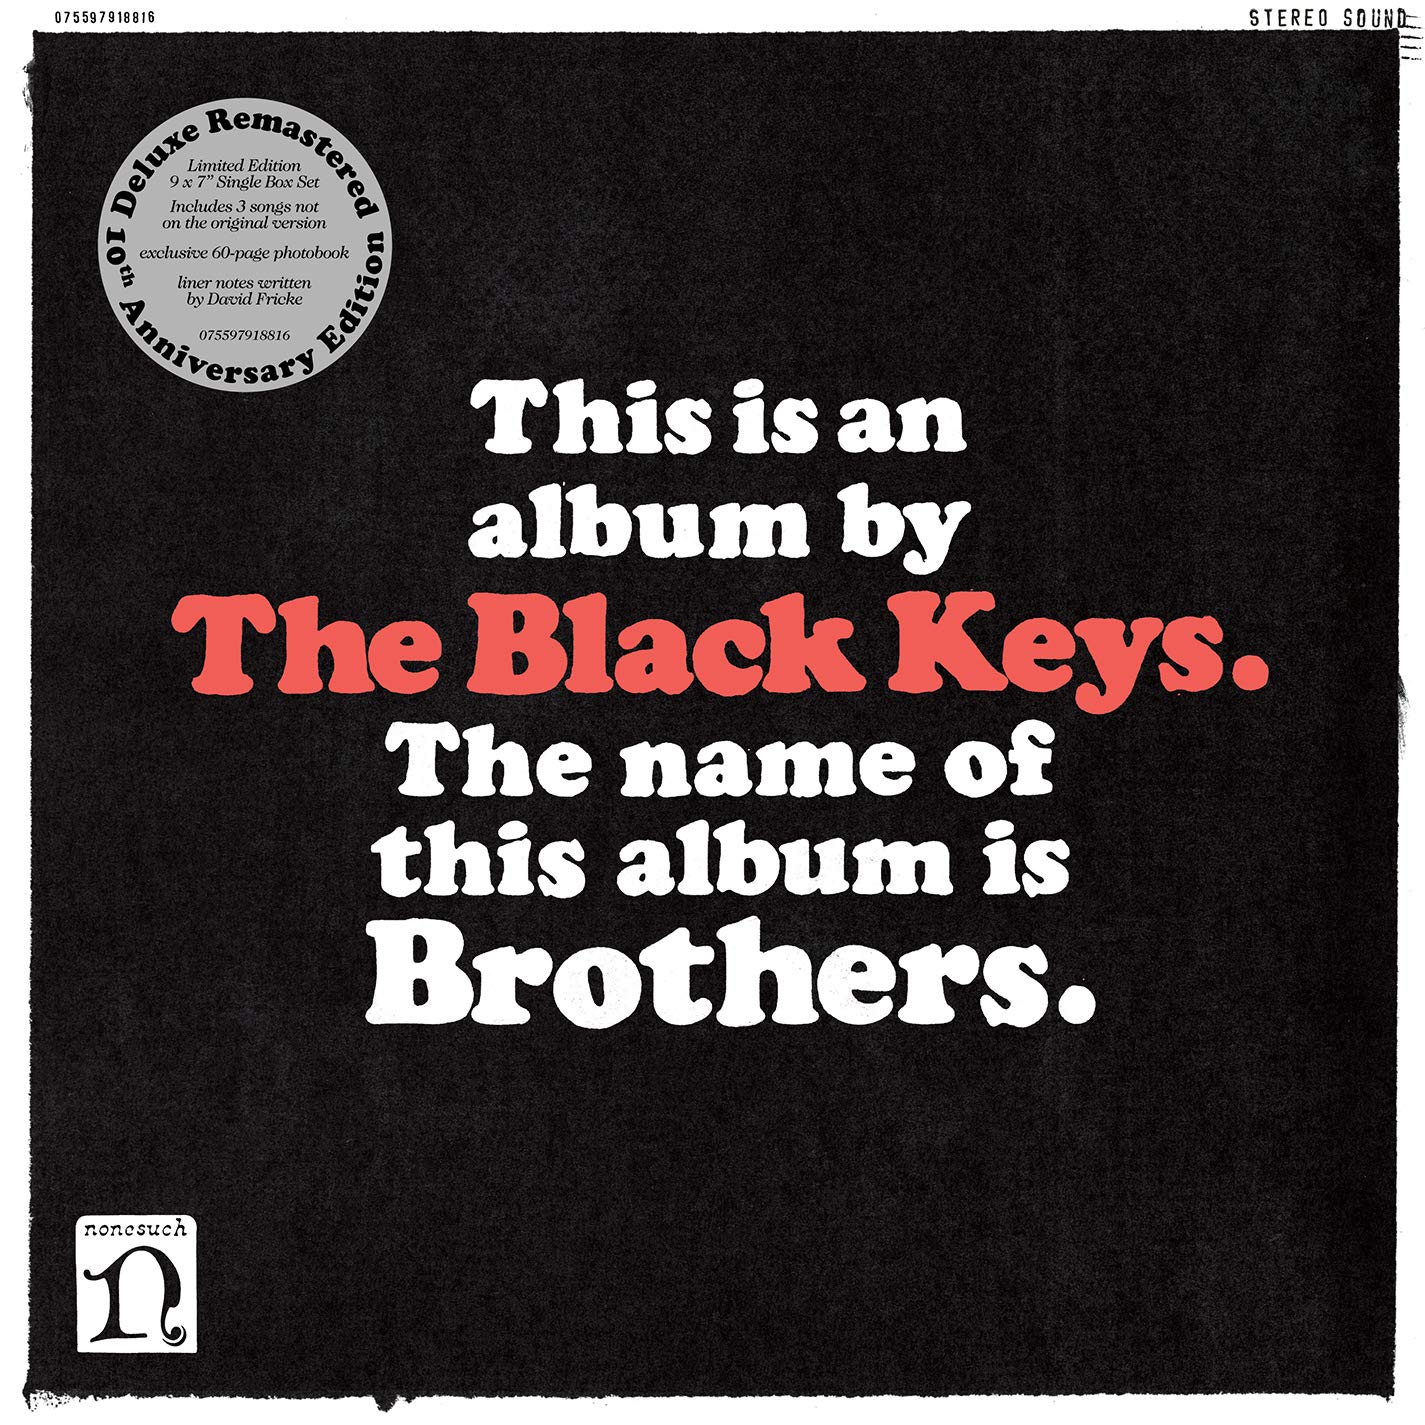 TBK Brothers Reissue - Press